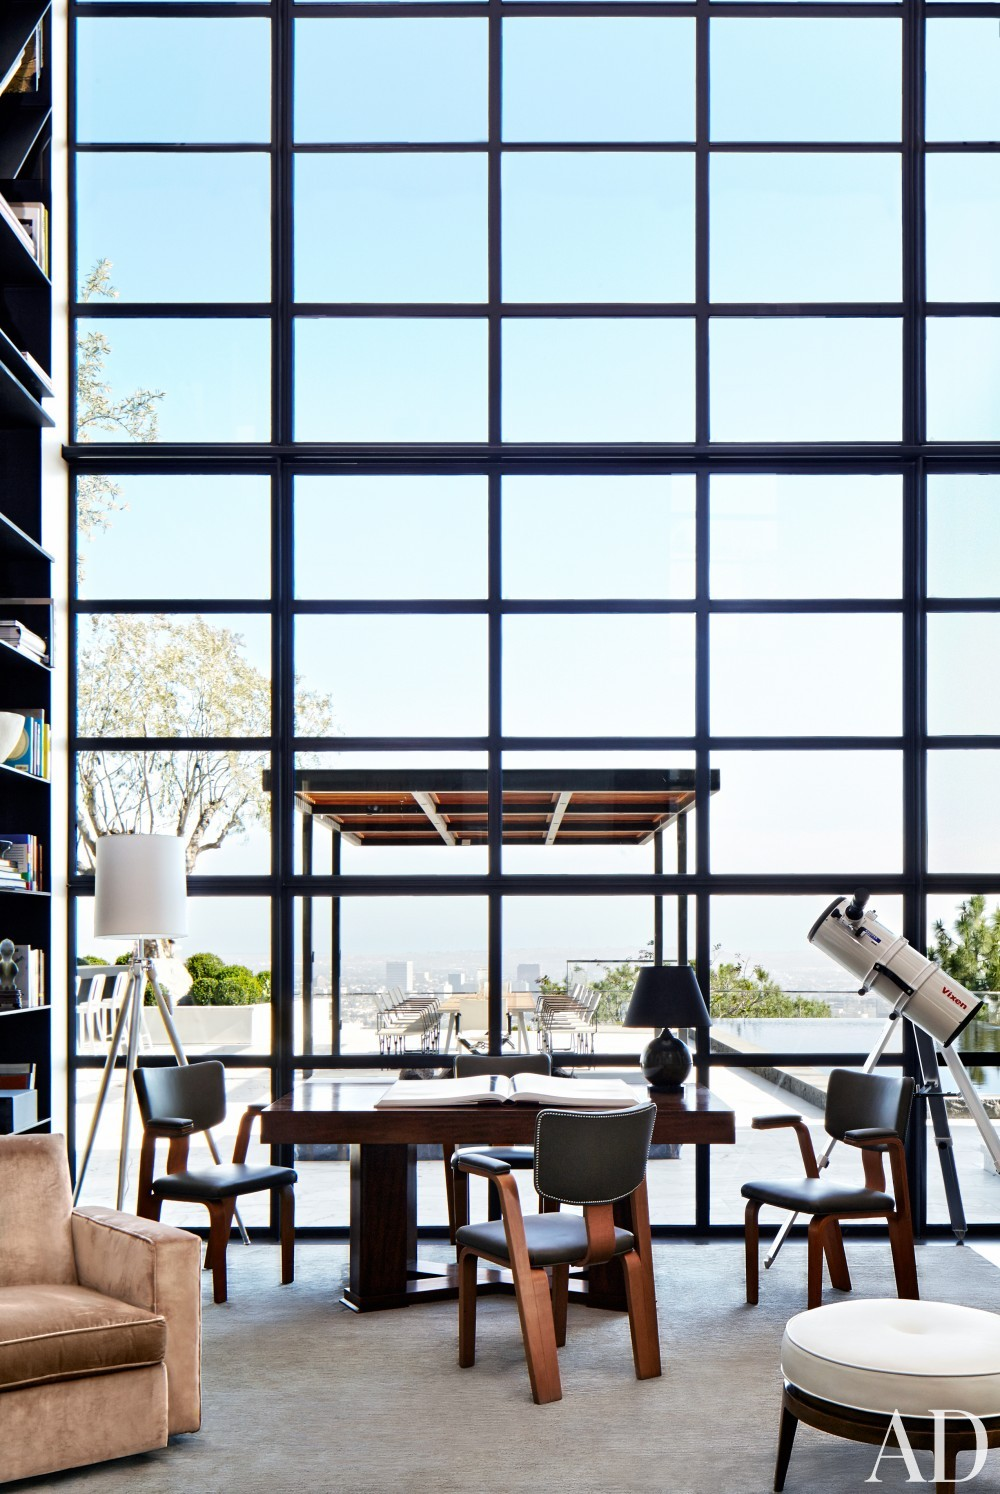 Office/Library by Dan Fink and Tim Murphy in Los Angeles, CA